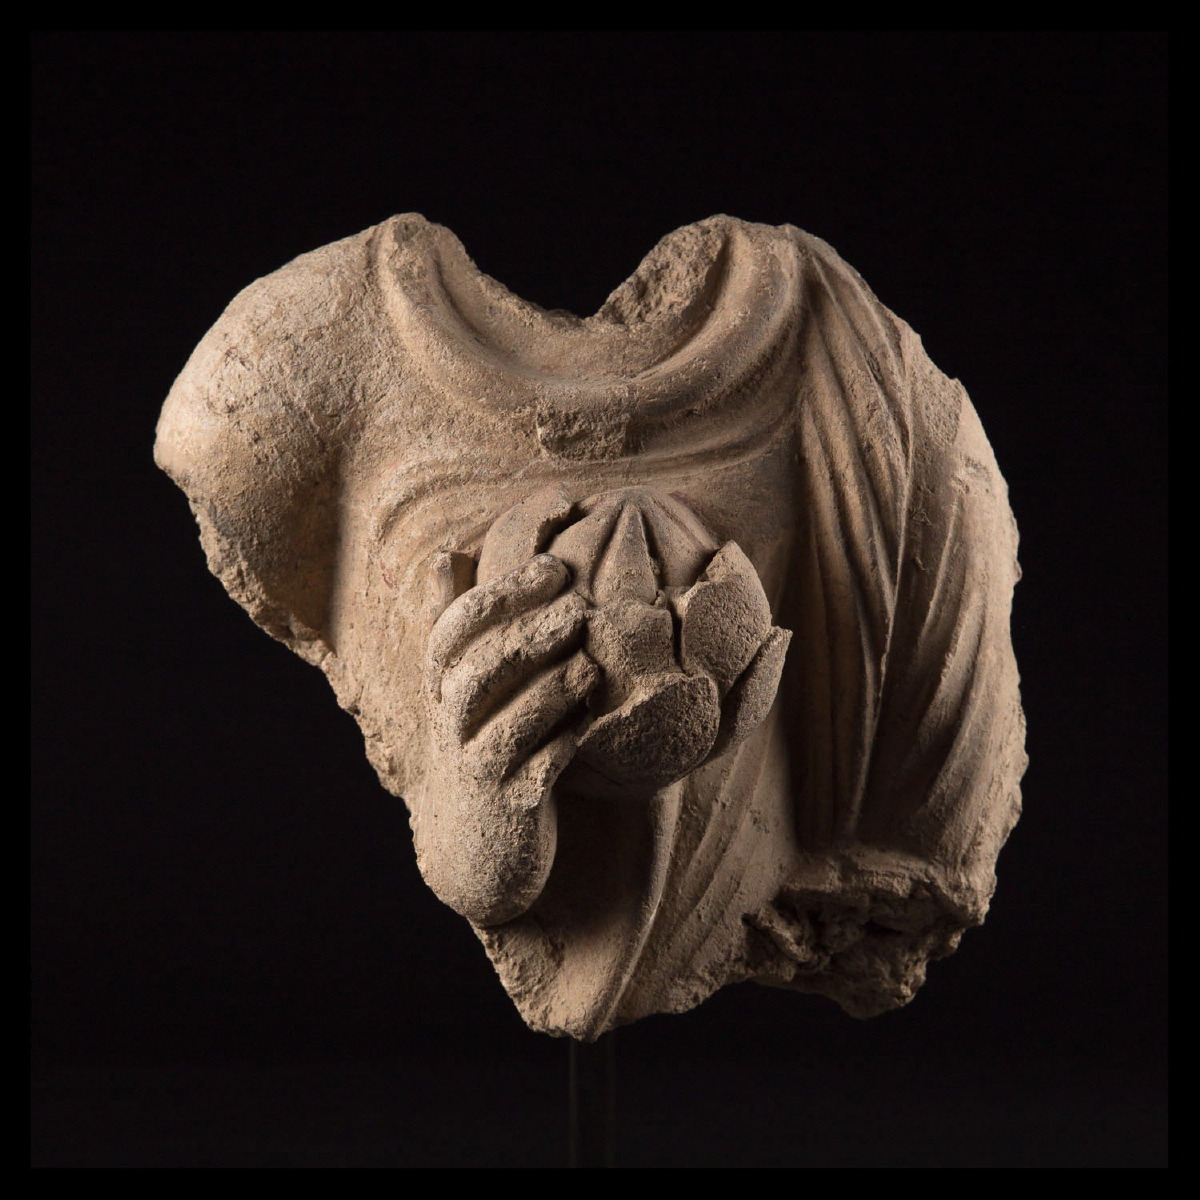 Photo of gandhara-bouddha-lotus-flower-stucco-greco-buddhist-art-galerie-golconda-greco-buddhist-afganistan